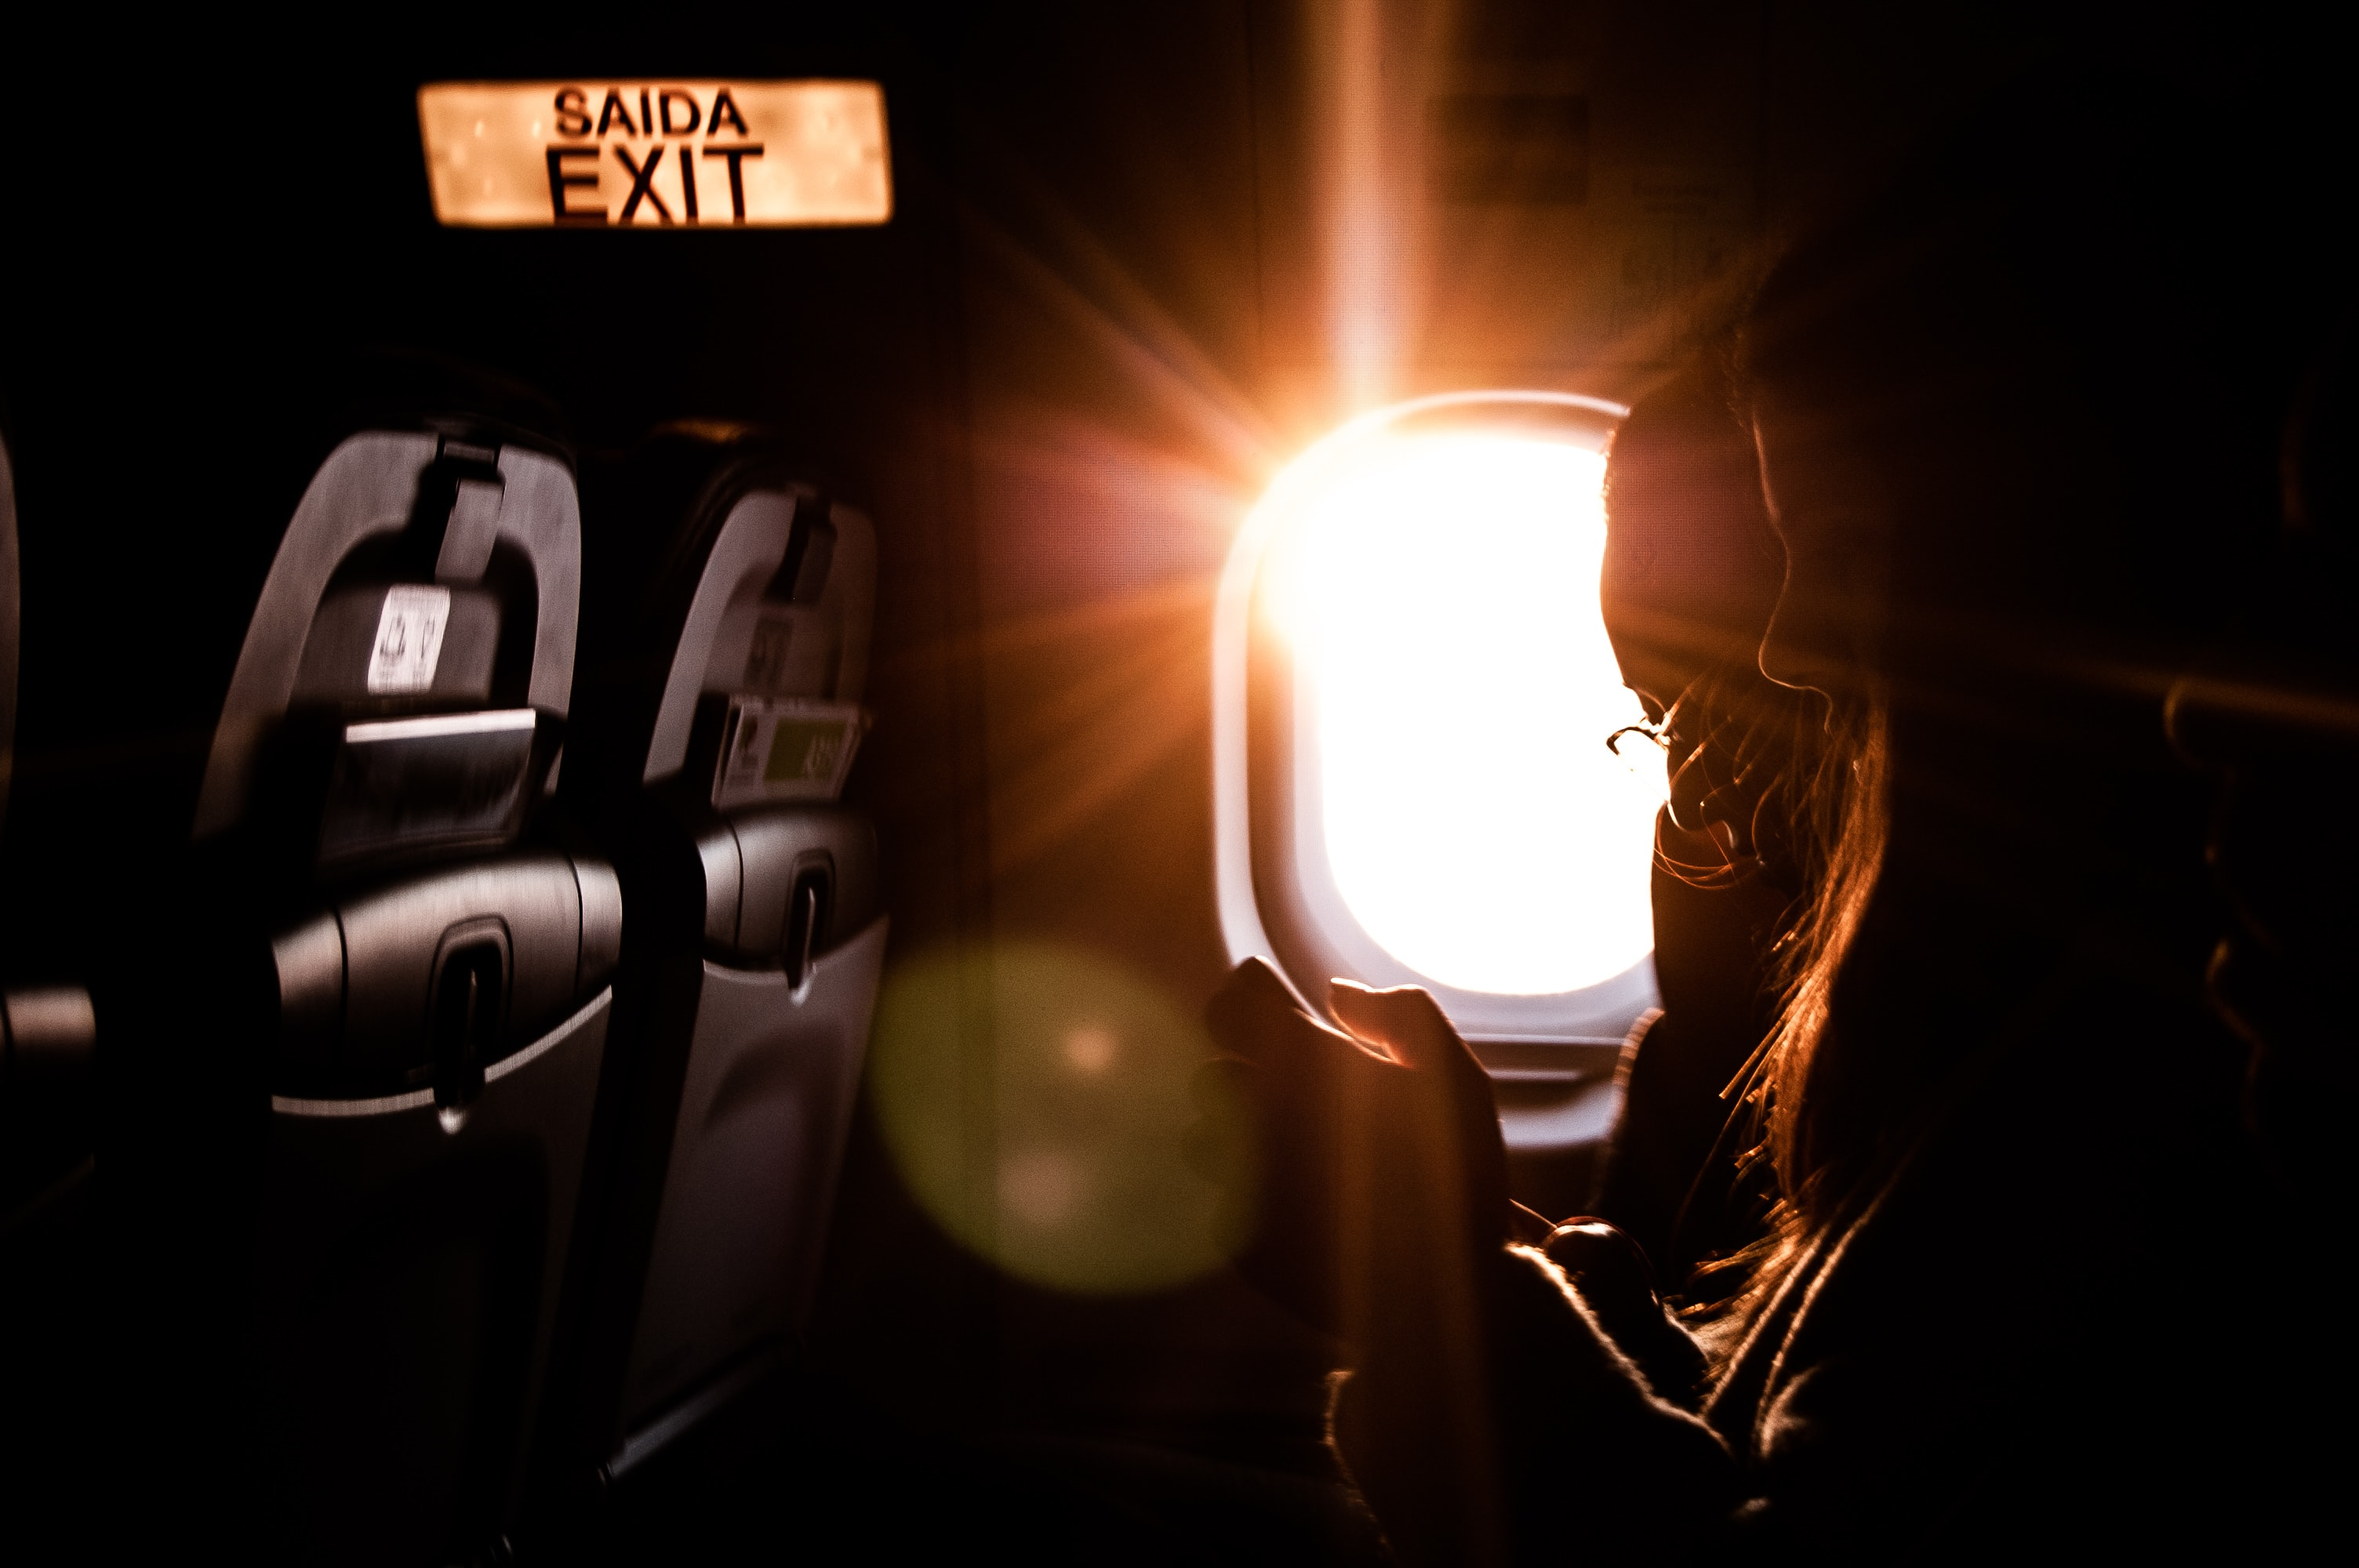 woman inside plane on focus photography